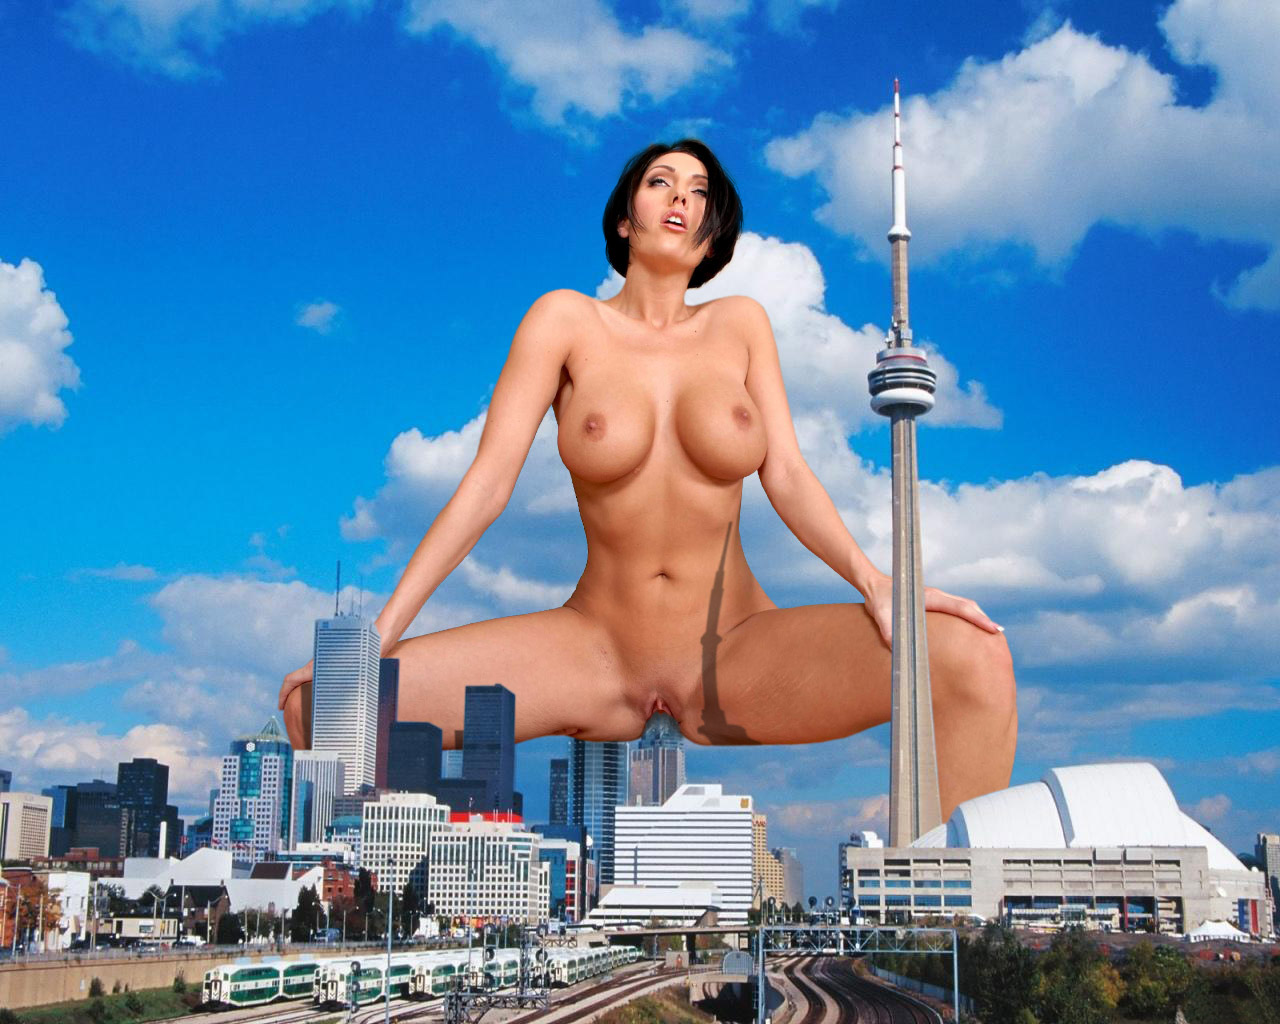 Naked giantess photos smut photos